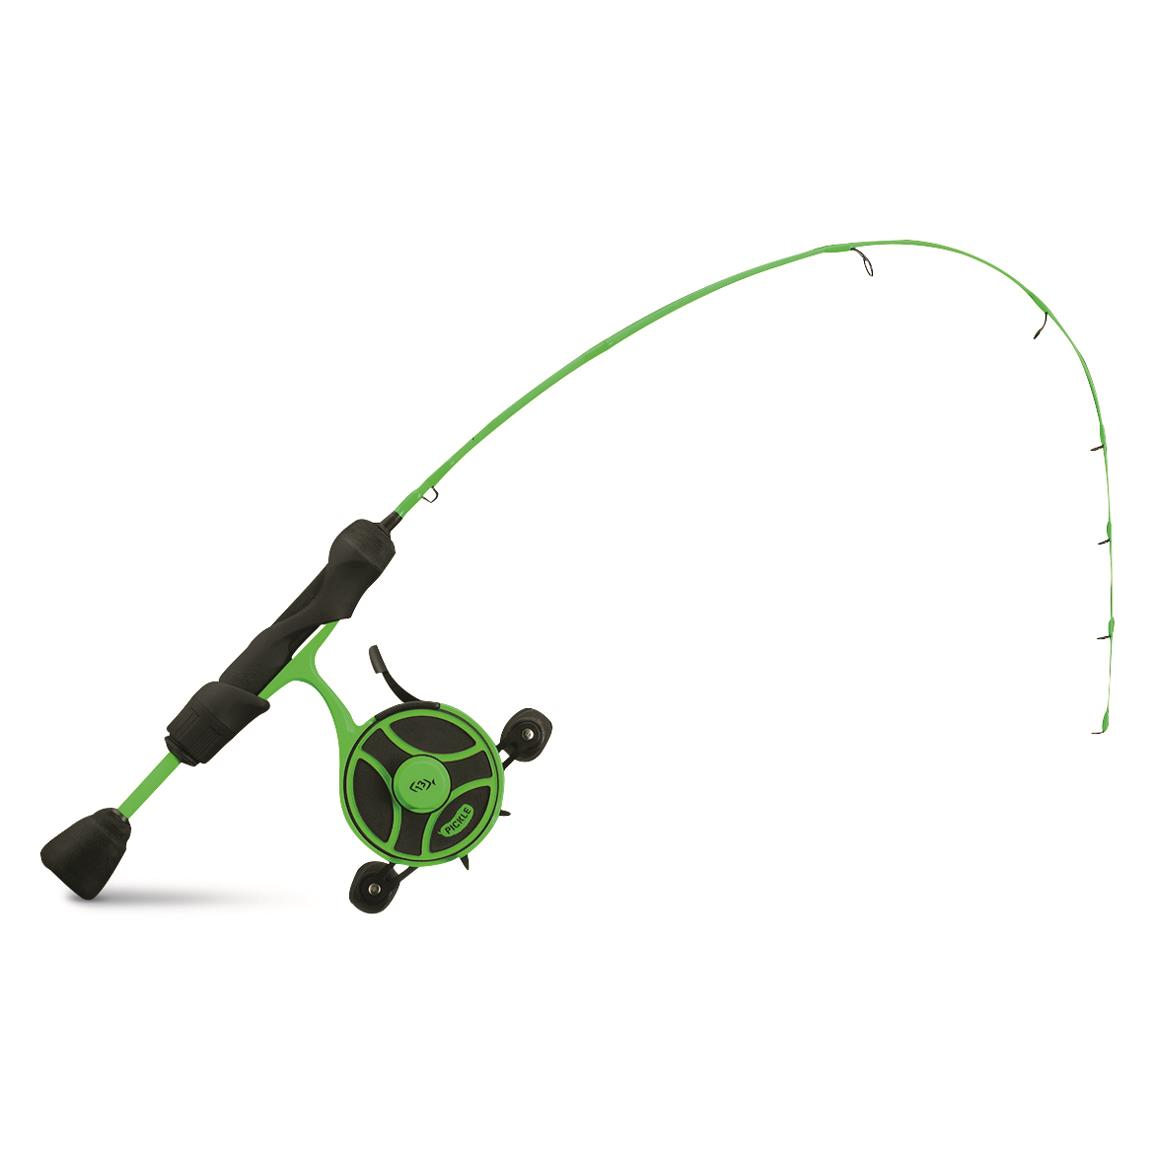 13 Fishing Black Betty FreeFall Ghost Radioactive Pickle Ice Fishing Combo, Left Handed, 27""